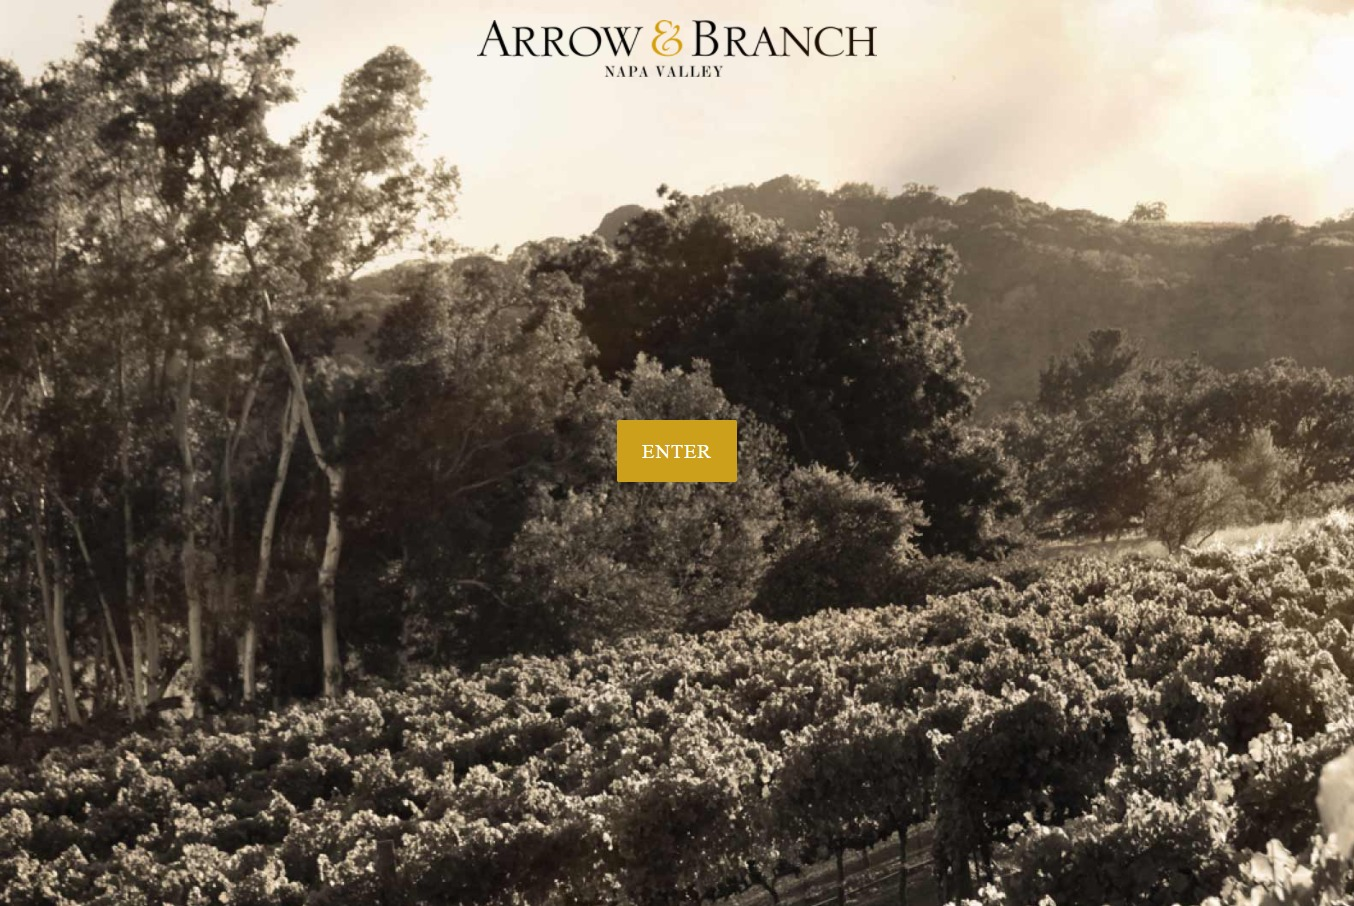 Image of arrowandbranch.com